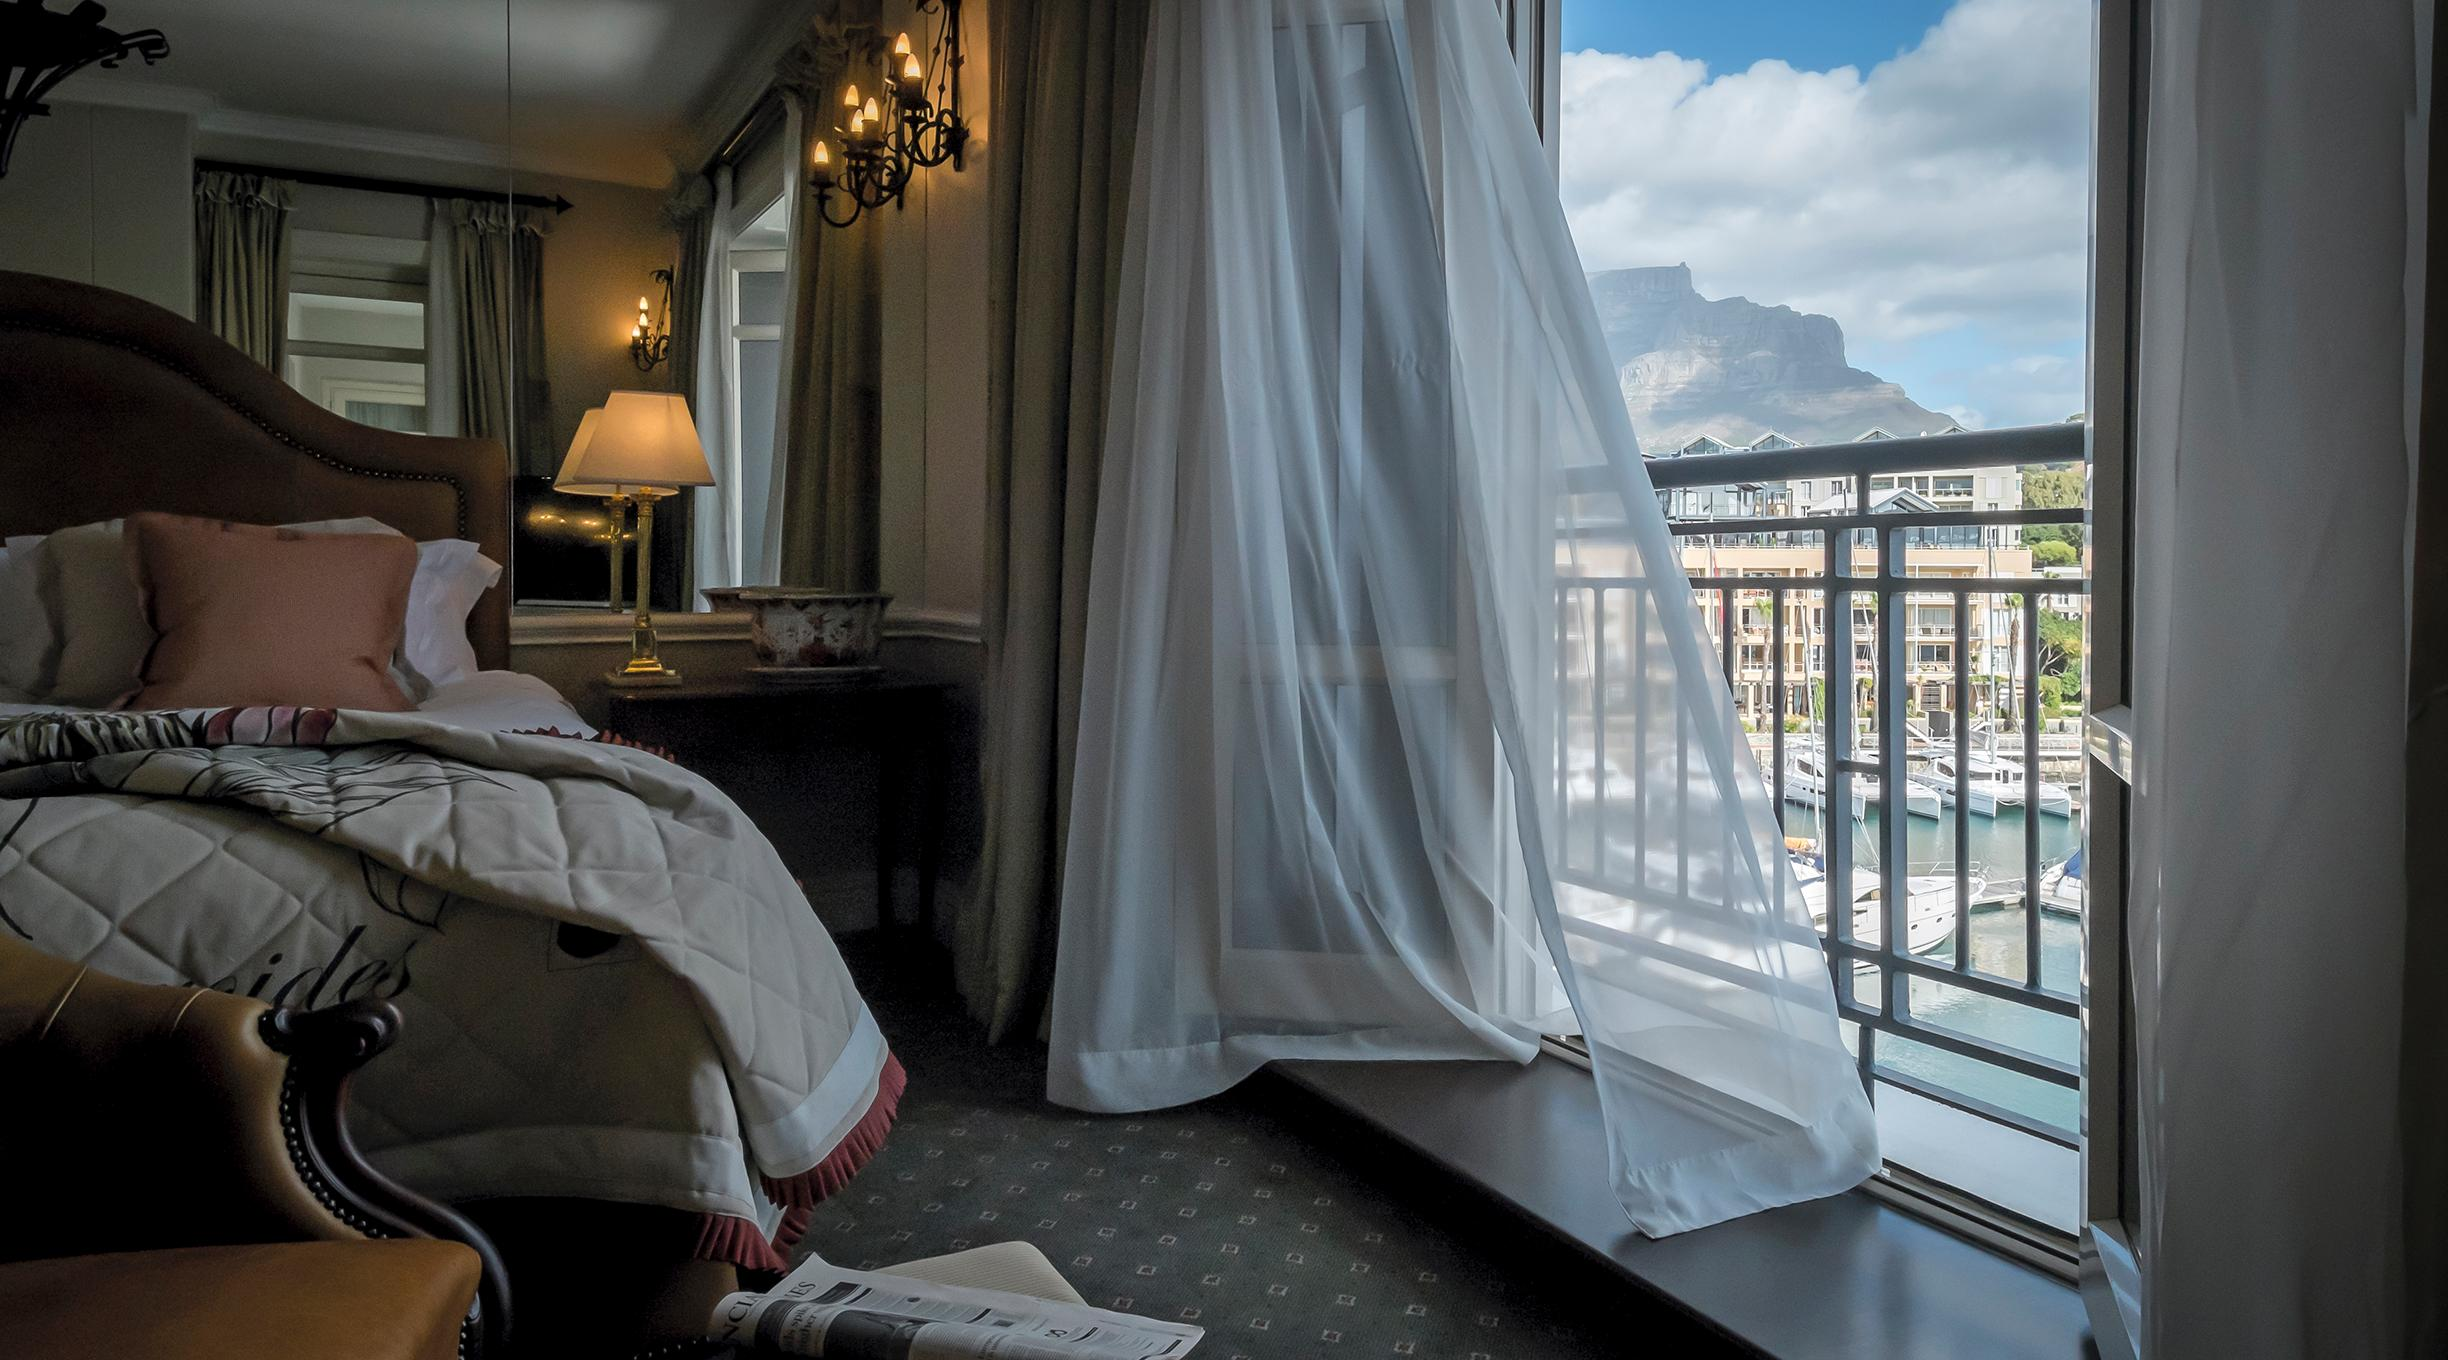 Rooms with views of Table Mountain